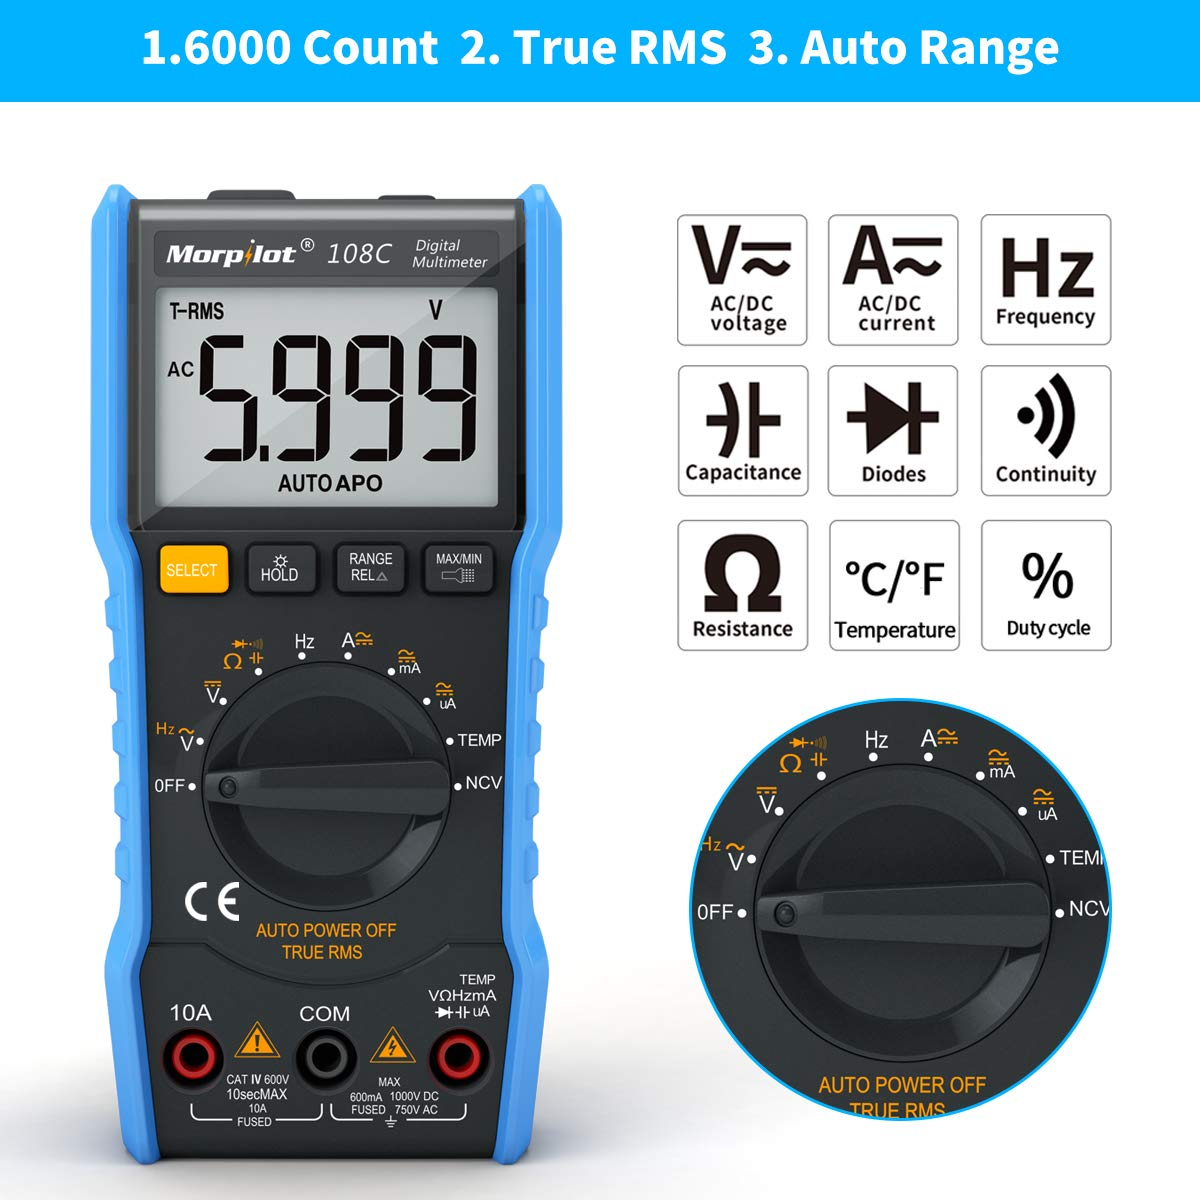 Keenstone Digital Multimeter,TRMS 6000 Counts Manual and Auto Ranging;Pocket Size Flashlight Measures Voltage Tester,Current,Resistance,Continuity,Frequency;Tests Diodes,Transistors,Temperature